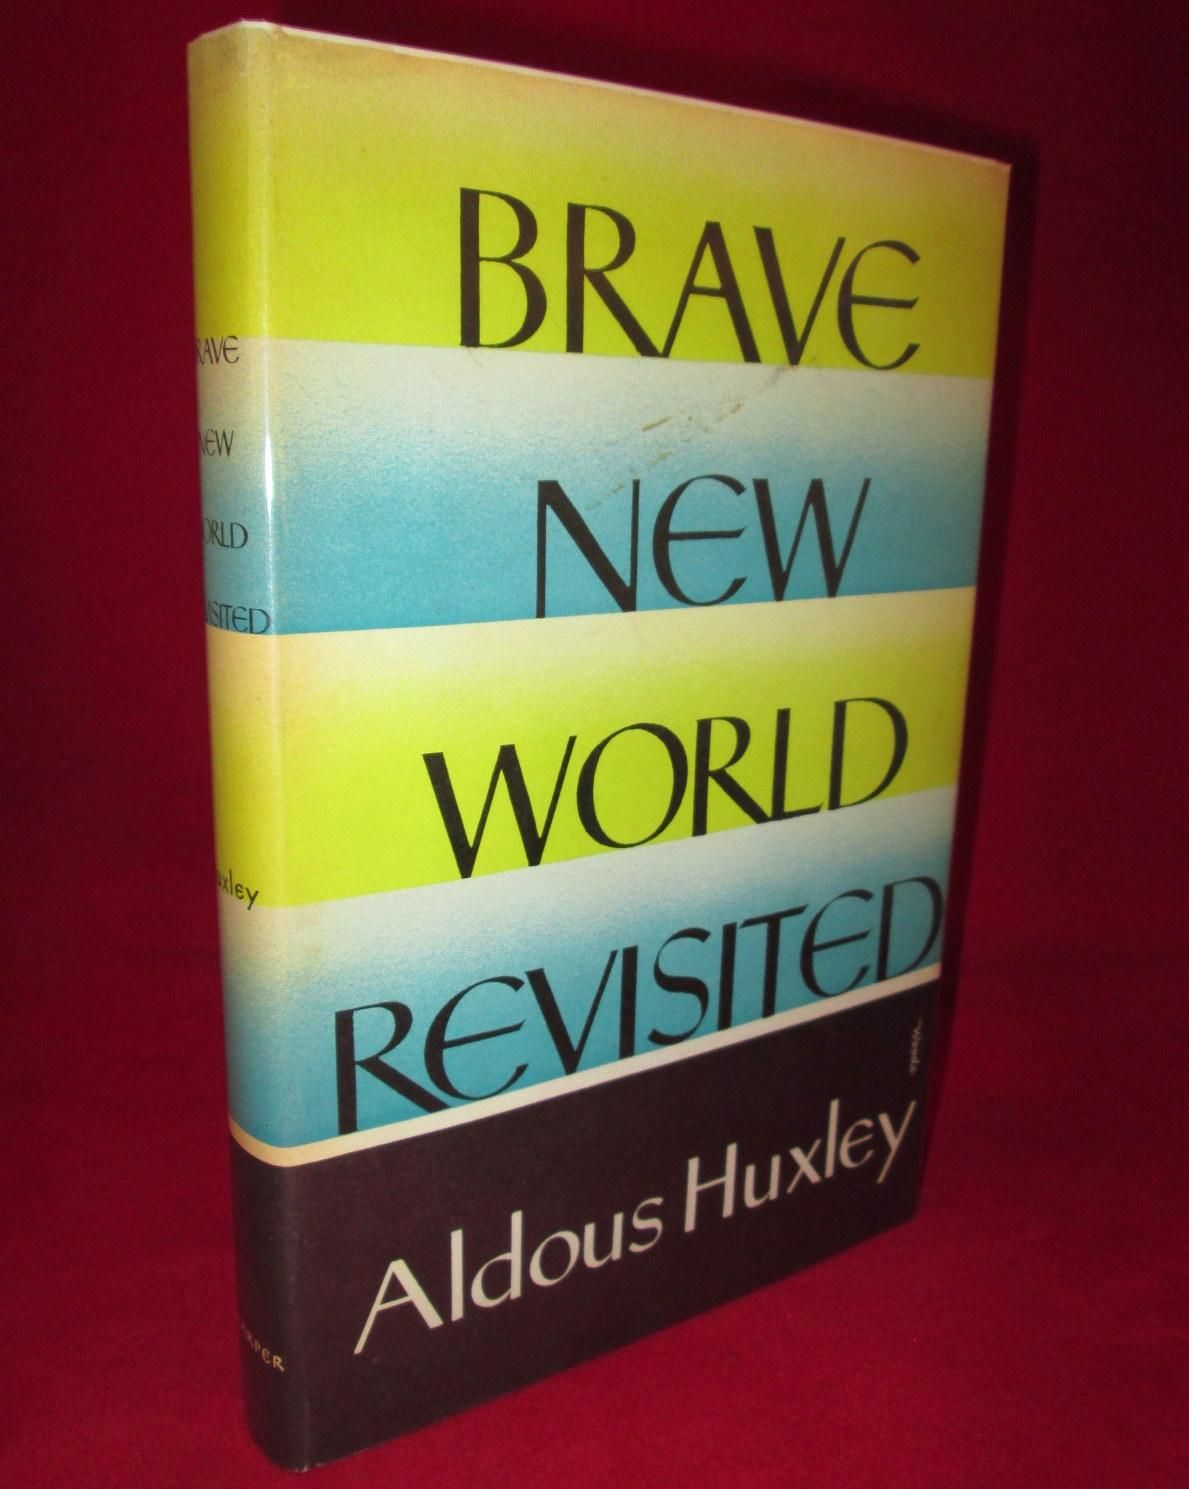 a review of the dangers of technology in brave new world a novel by aldous huxley Brave new world is a classic science fiction novel written by aldous huxley and published in 1932 huxley's novel is a warning about the dangers of a culture focused on instant gratification i've used thinkcerca's technology and impact differentiated lesson set to have students read an.